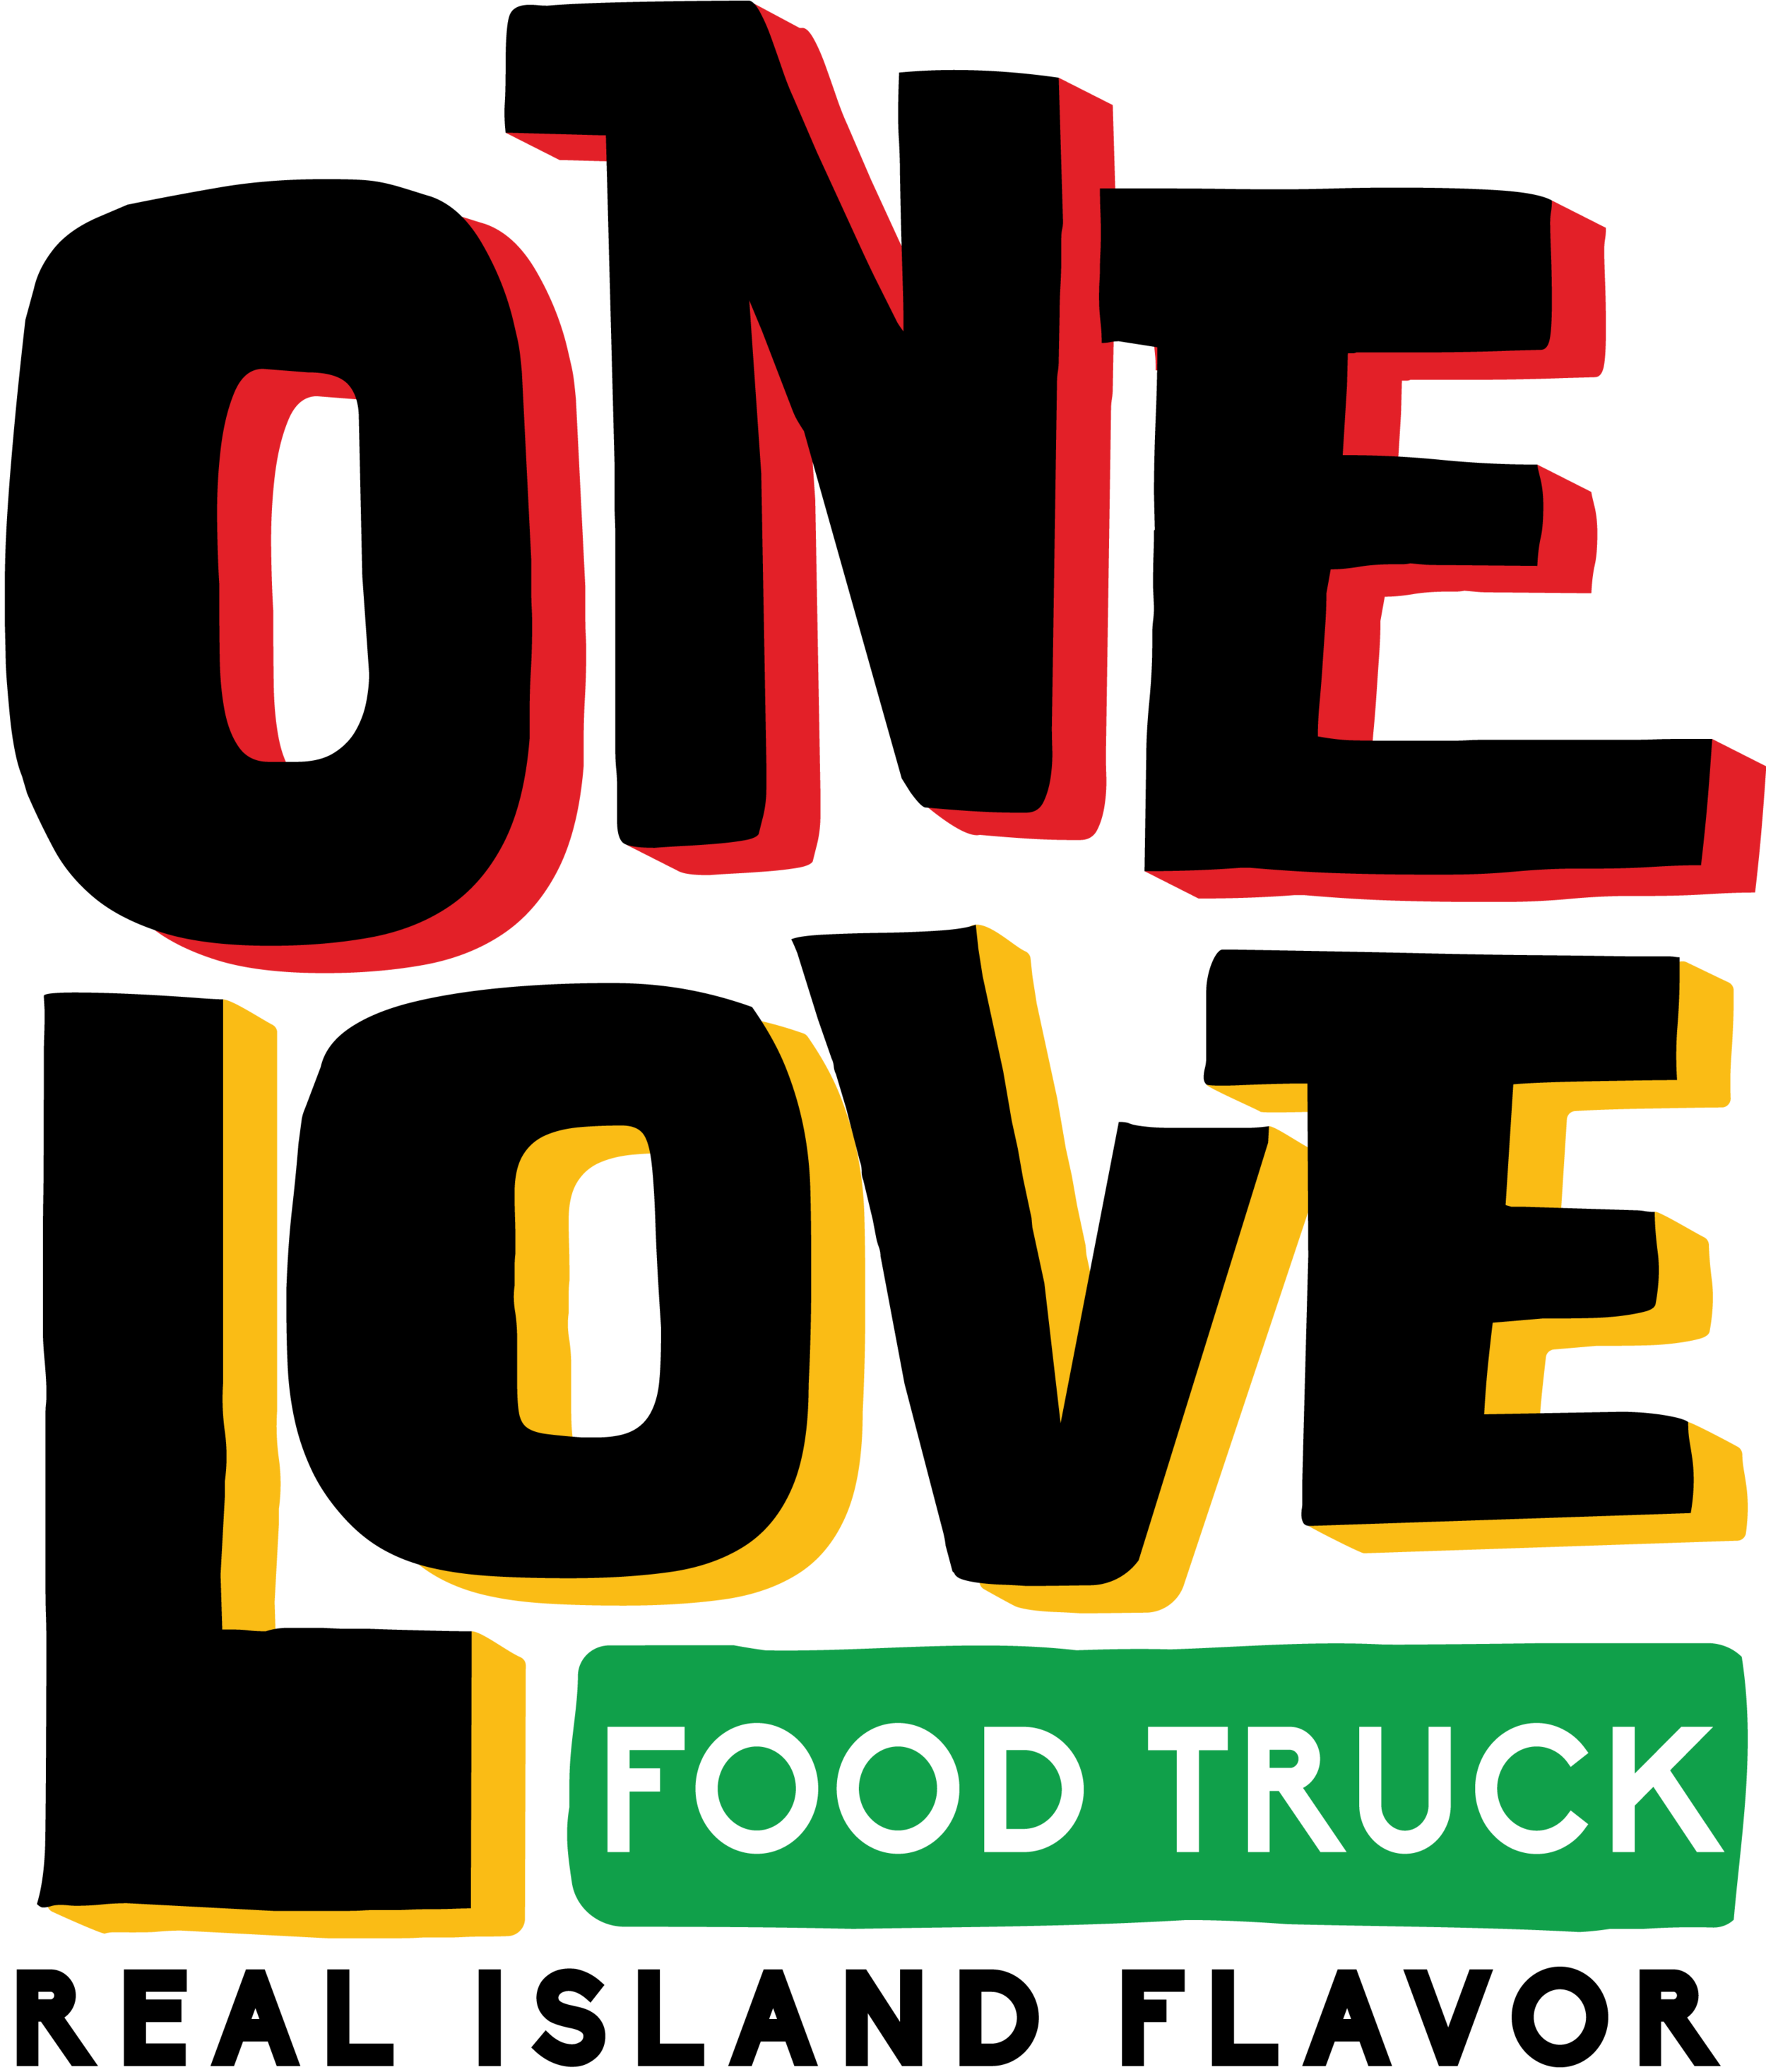 One Love Food Truck in Stock Island Florida. Real Island Flavor, Authentic Jamaican spices.